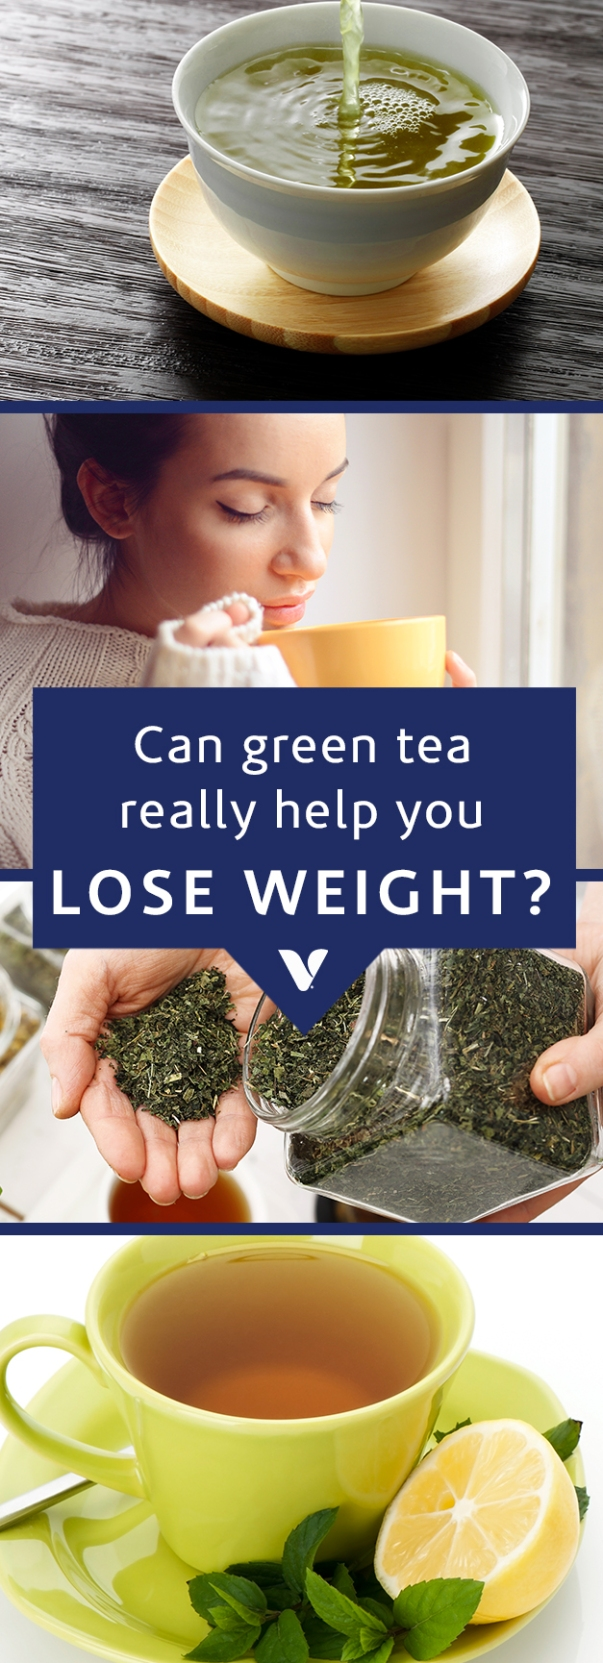 can-green-tea-really-help-you